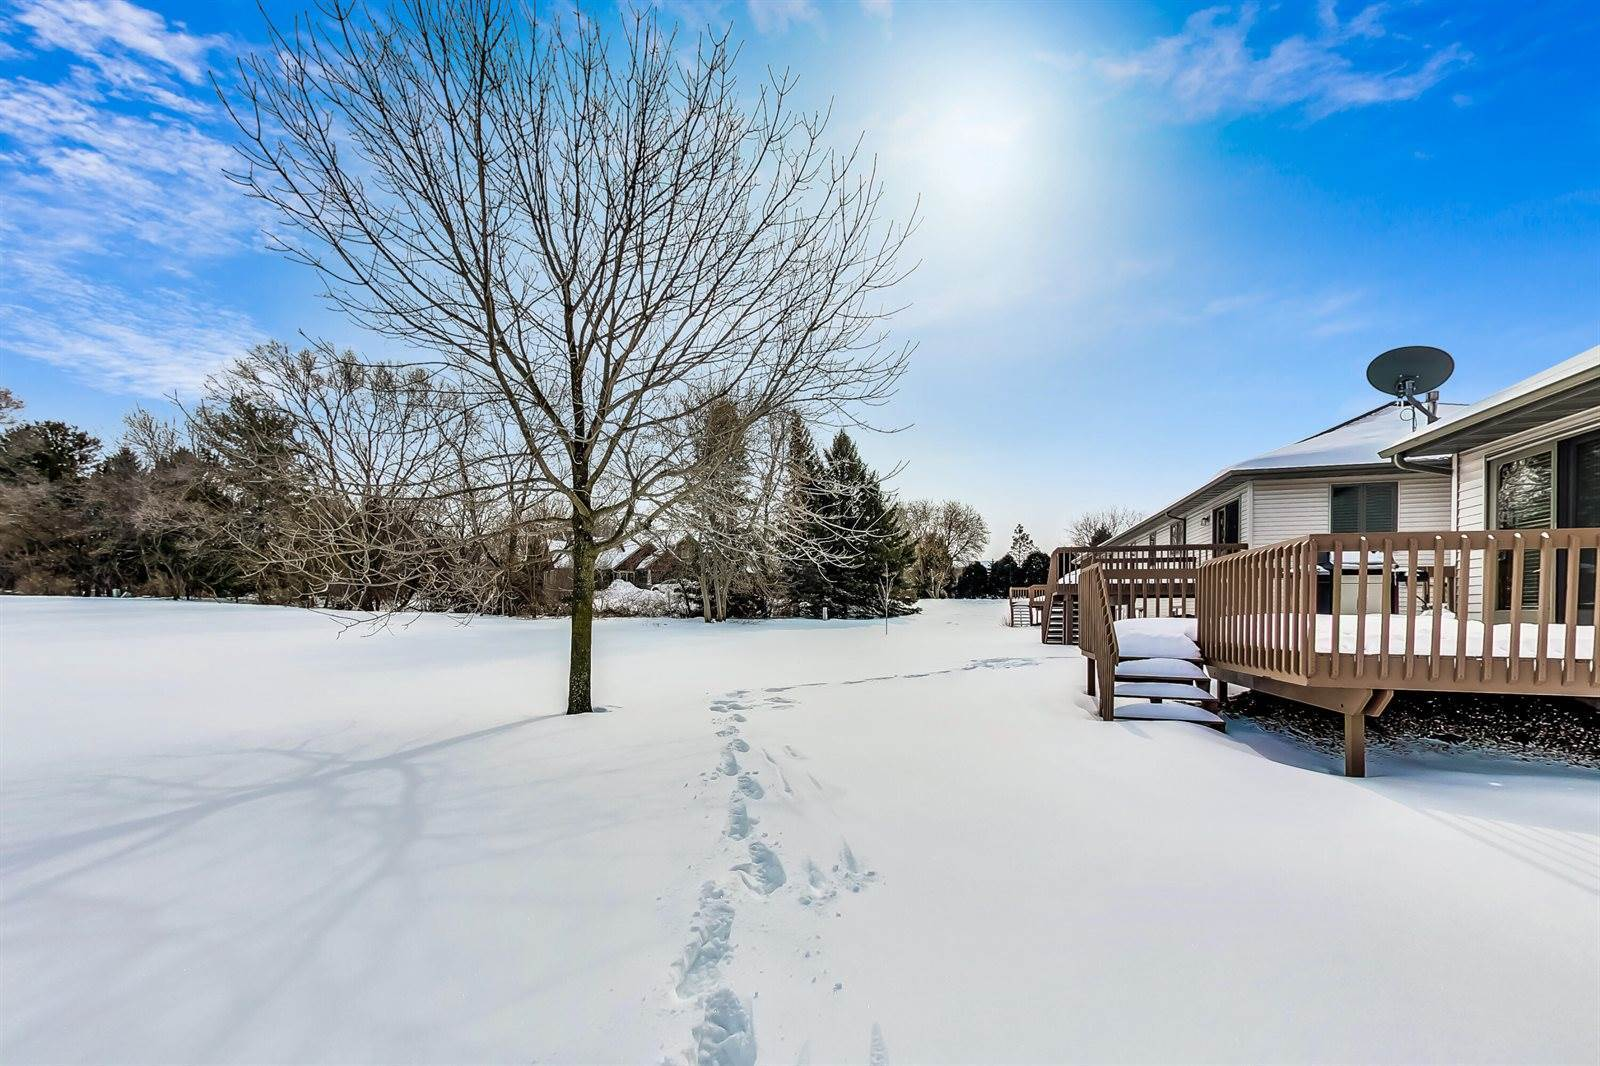 241 Indian Mound Pkwy, Whitewater, WI 53190